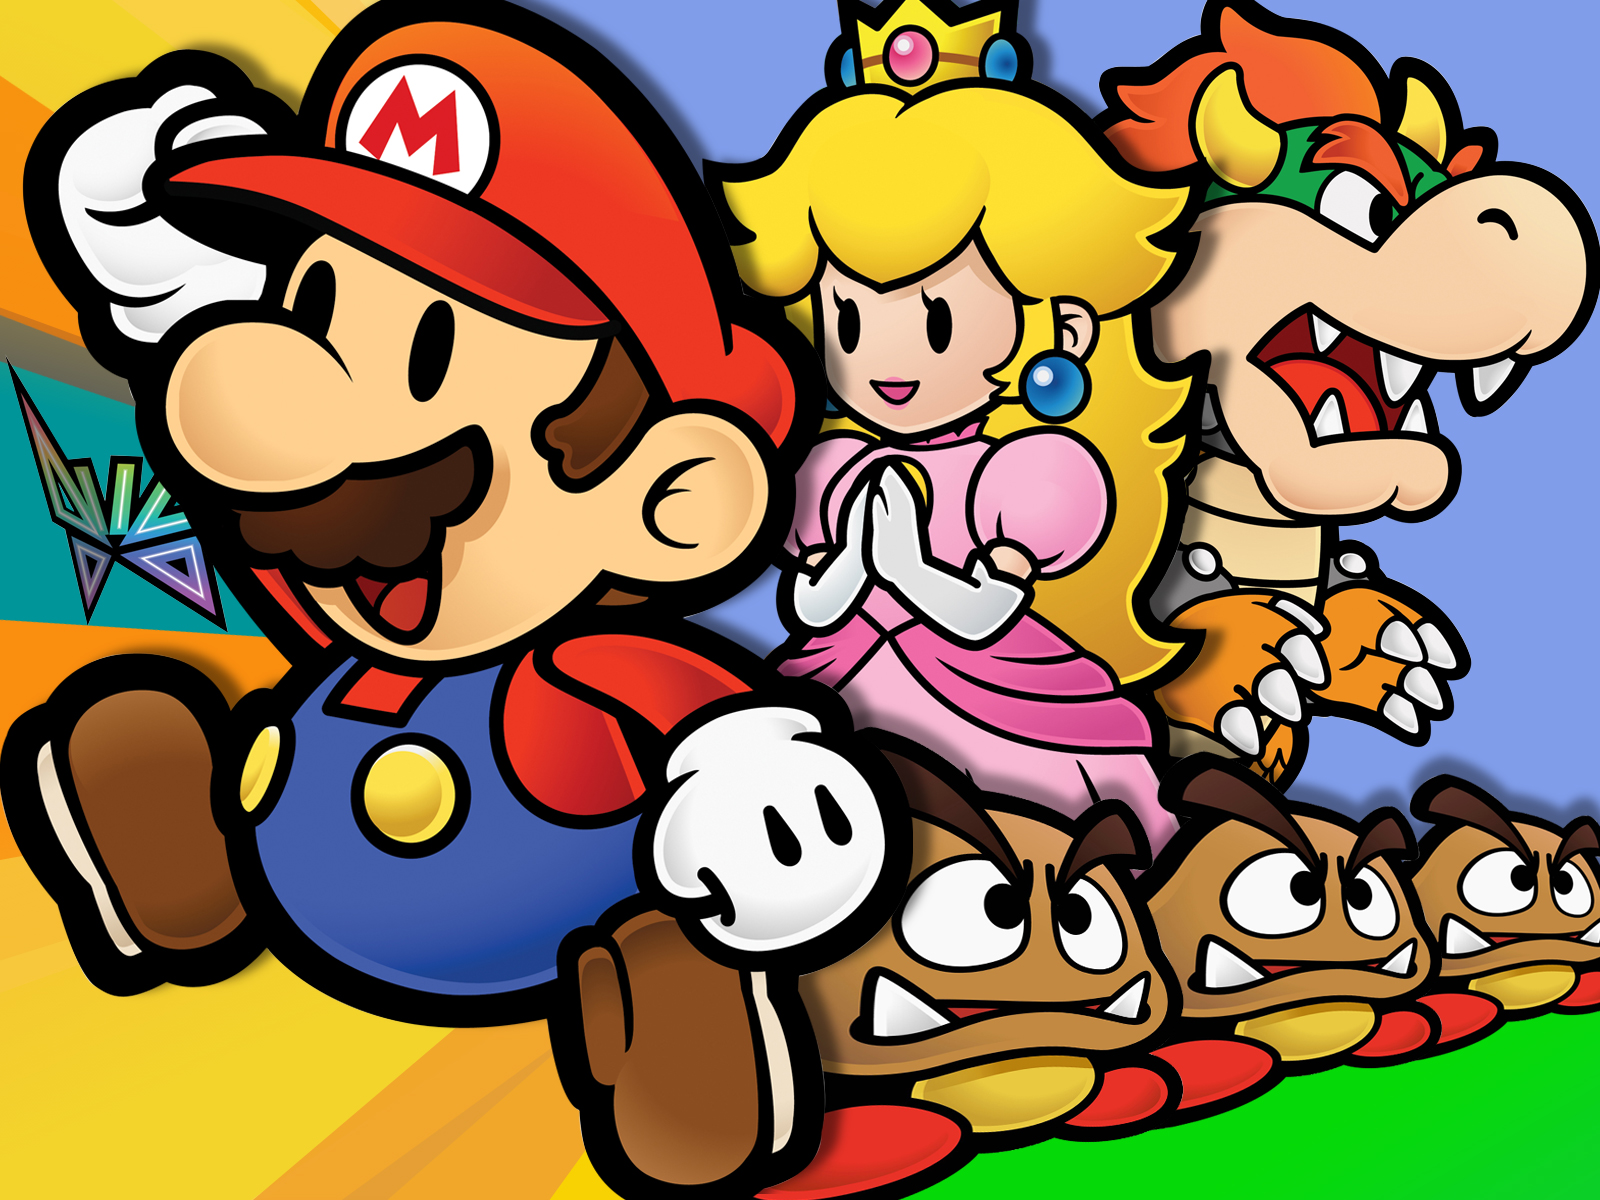 Paper Mario and Peach The Most Popular Game of 2020 You Must Know